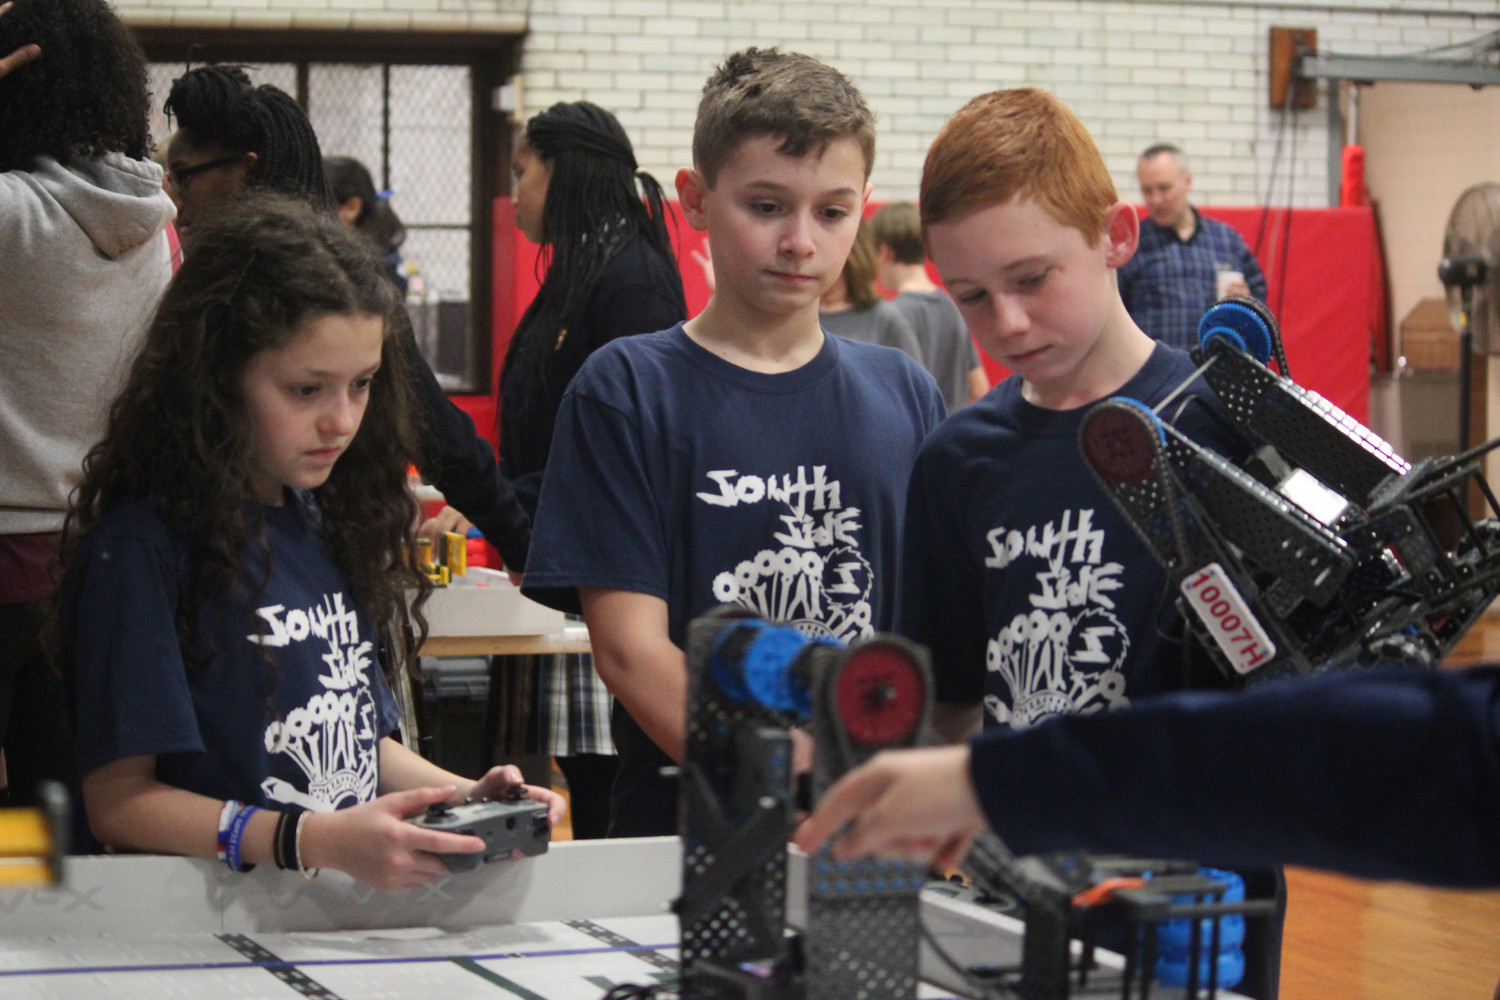 seventh-graders Melanie Koren, left, and Will Roesch prepped their robot for competition, as eighth-grader Kieran Cook looked on.